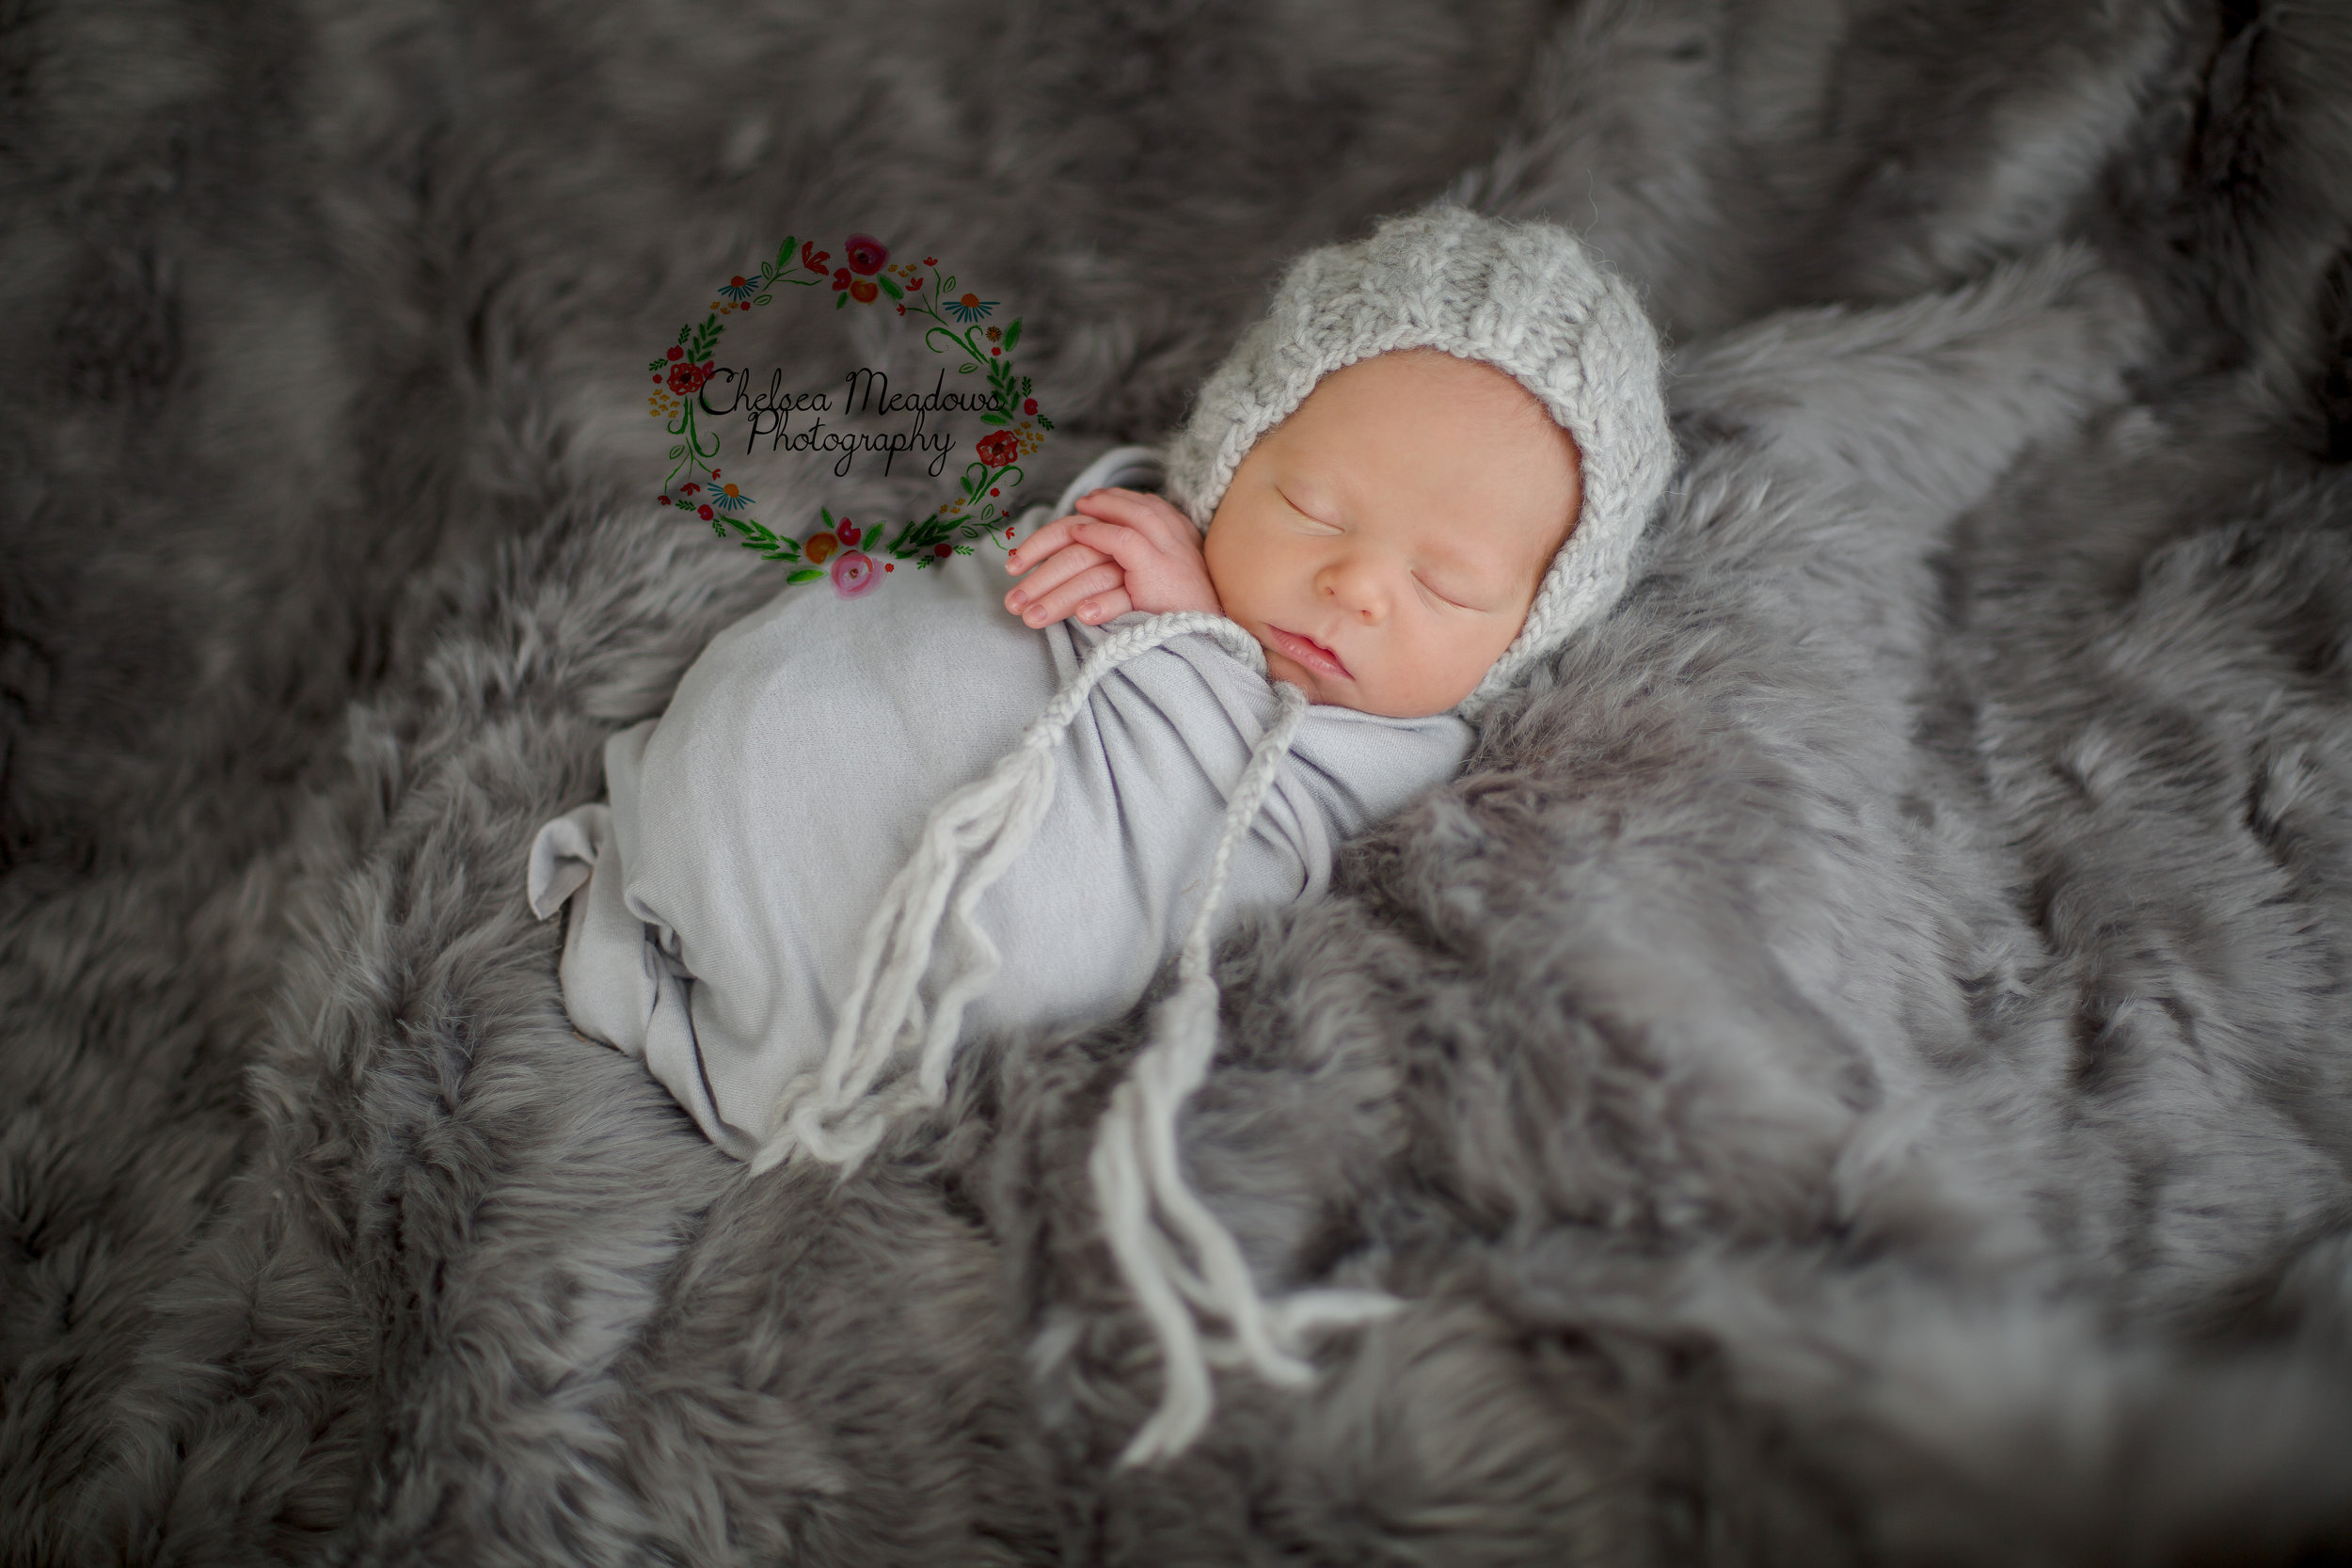 Owen Newborn Session - SM - Nashville Newborn Photographer - Chelsea Meadows Photography (8)_edited-1.jpg